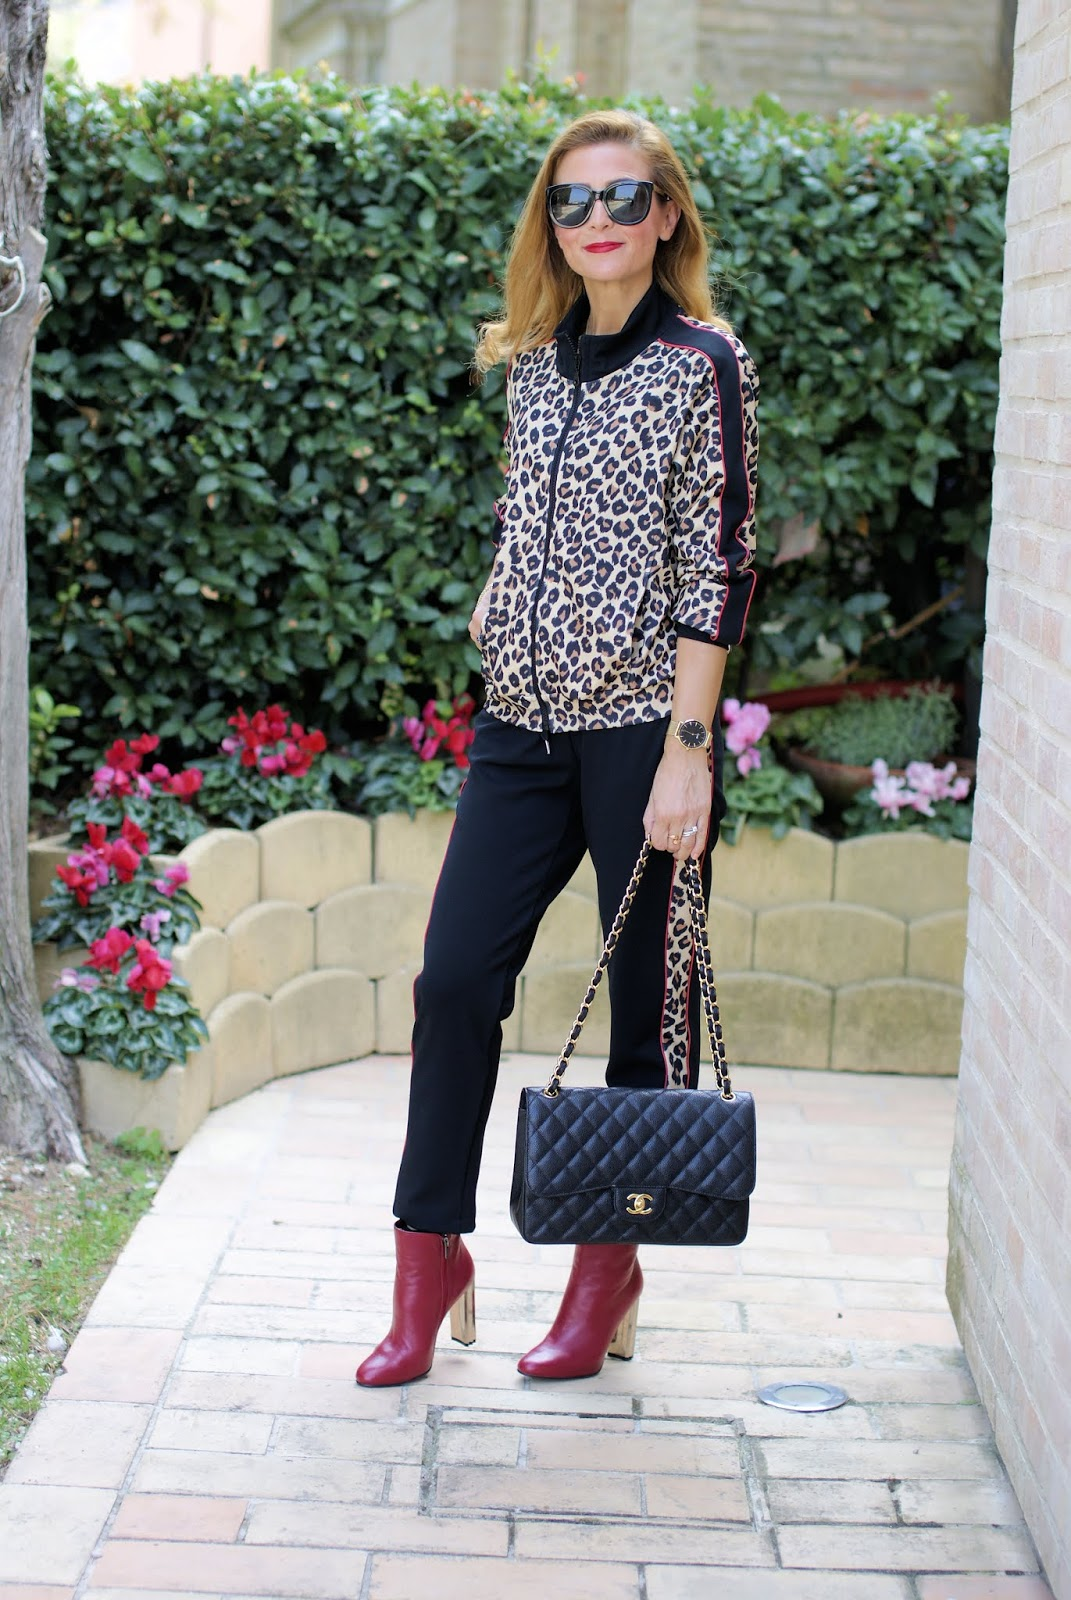 The animal print trend: leopard print tracksuit and Le Silla ankle boots on Fashion and Cookies fashion blog, fashion blogger style